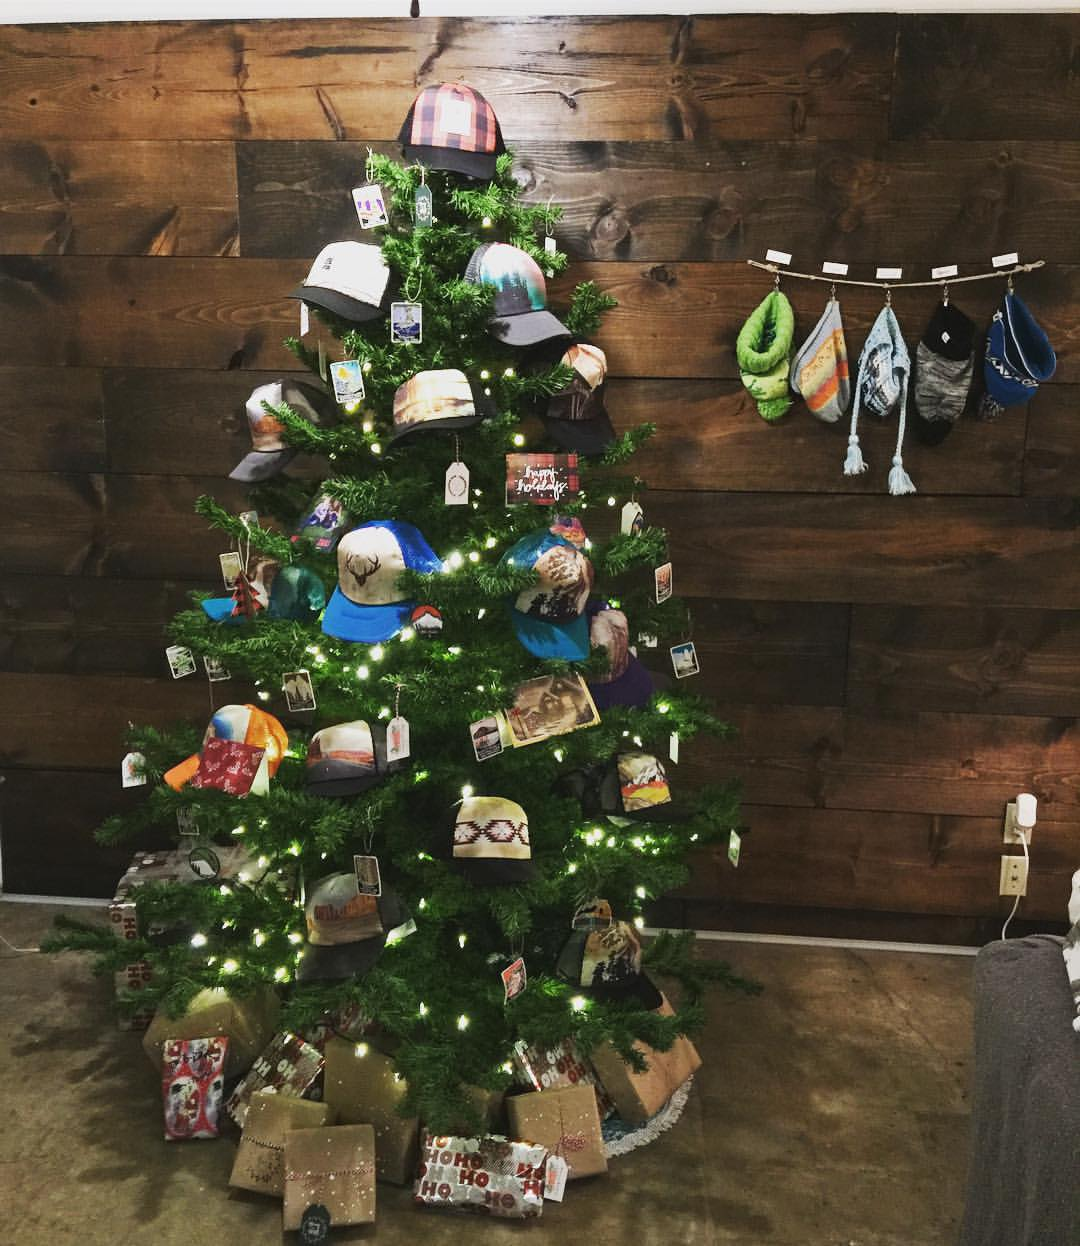 Heidi Michele hats and patches make for great Christmas tree decorations.